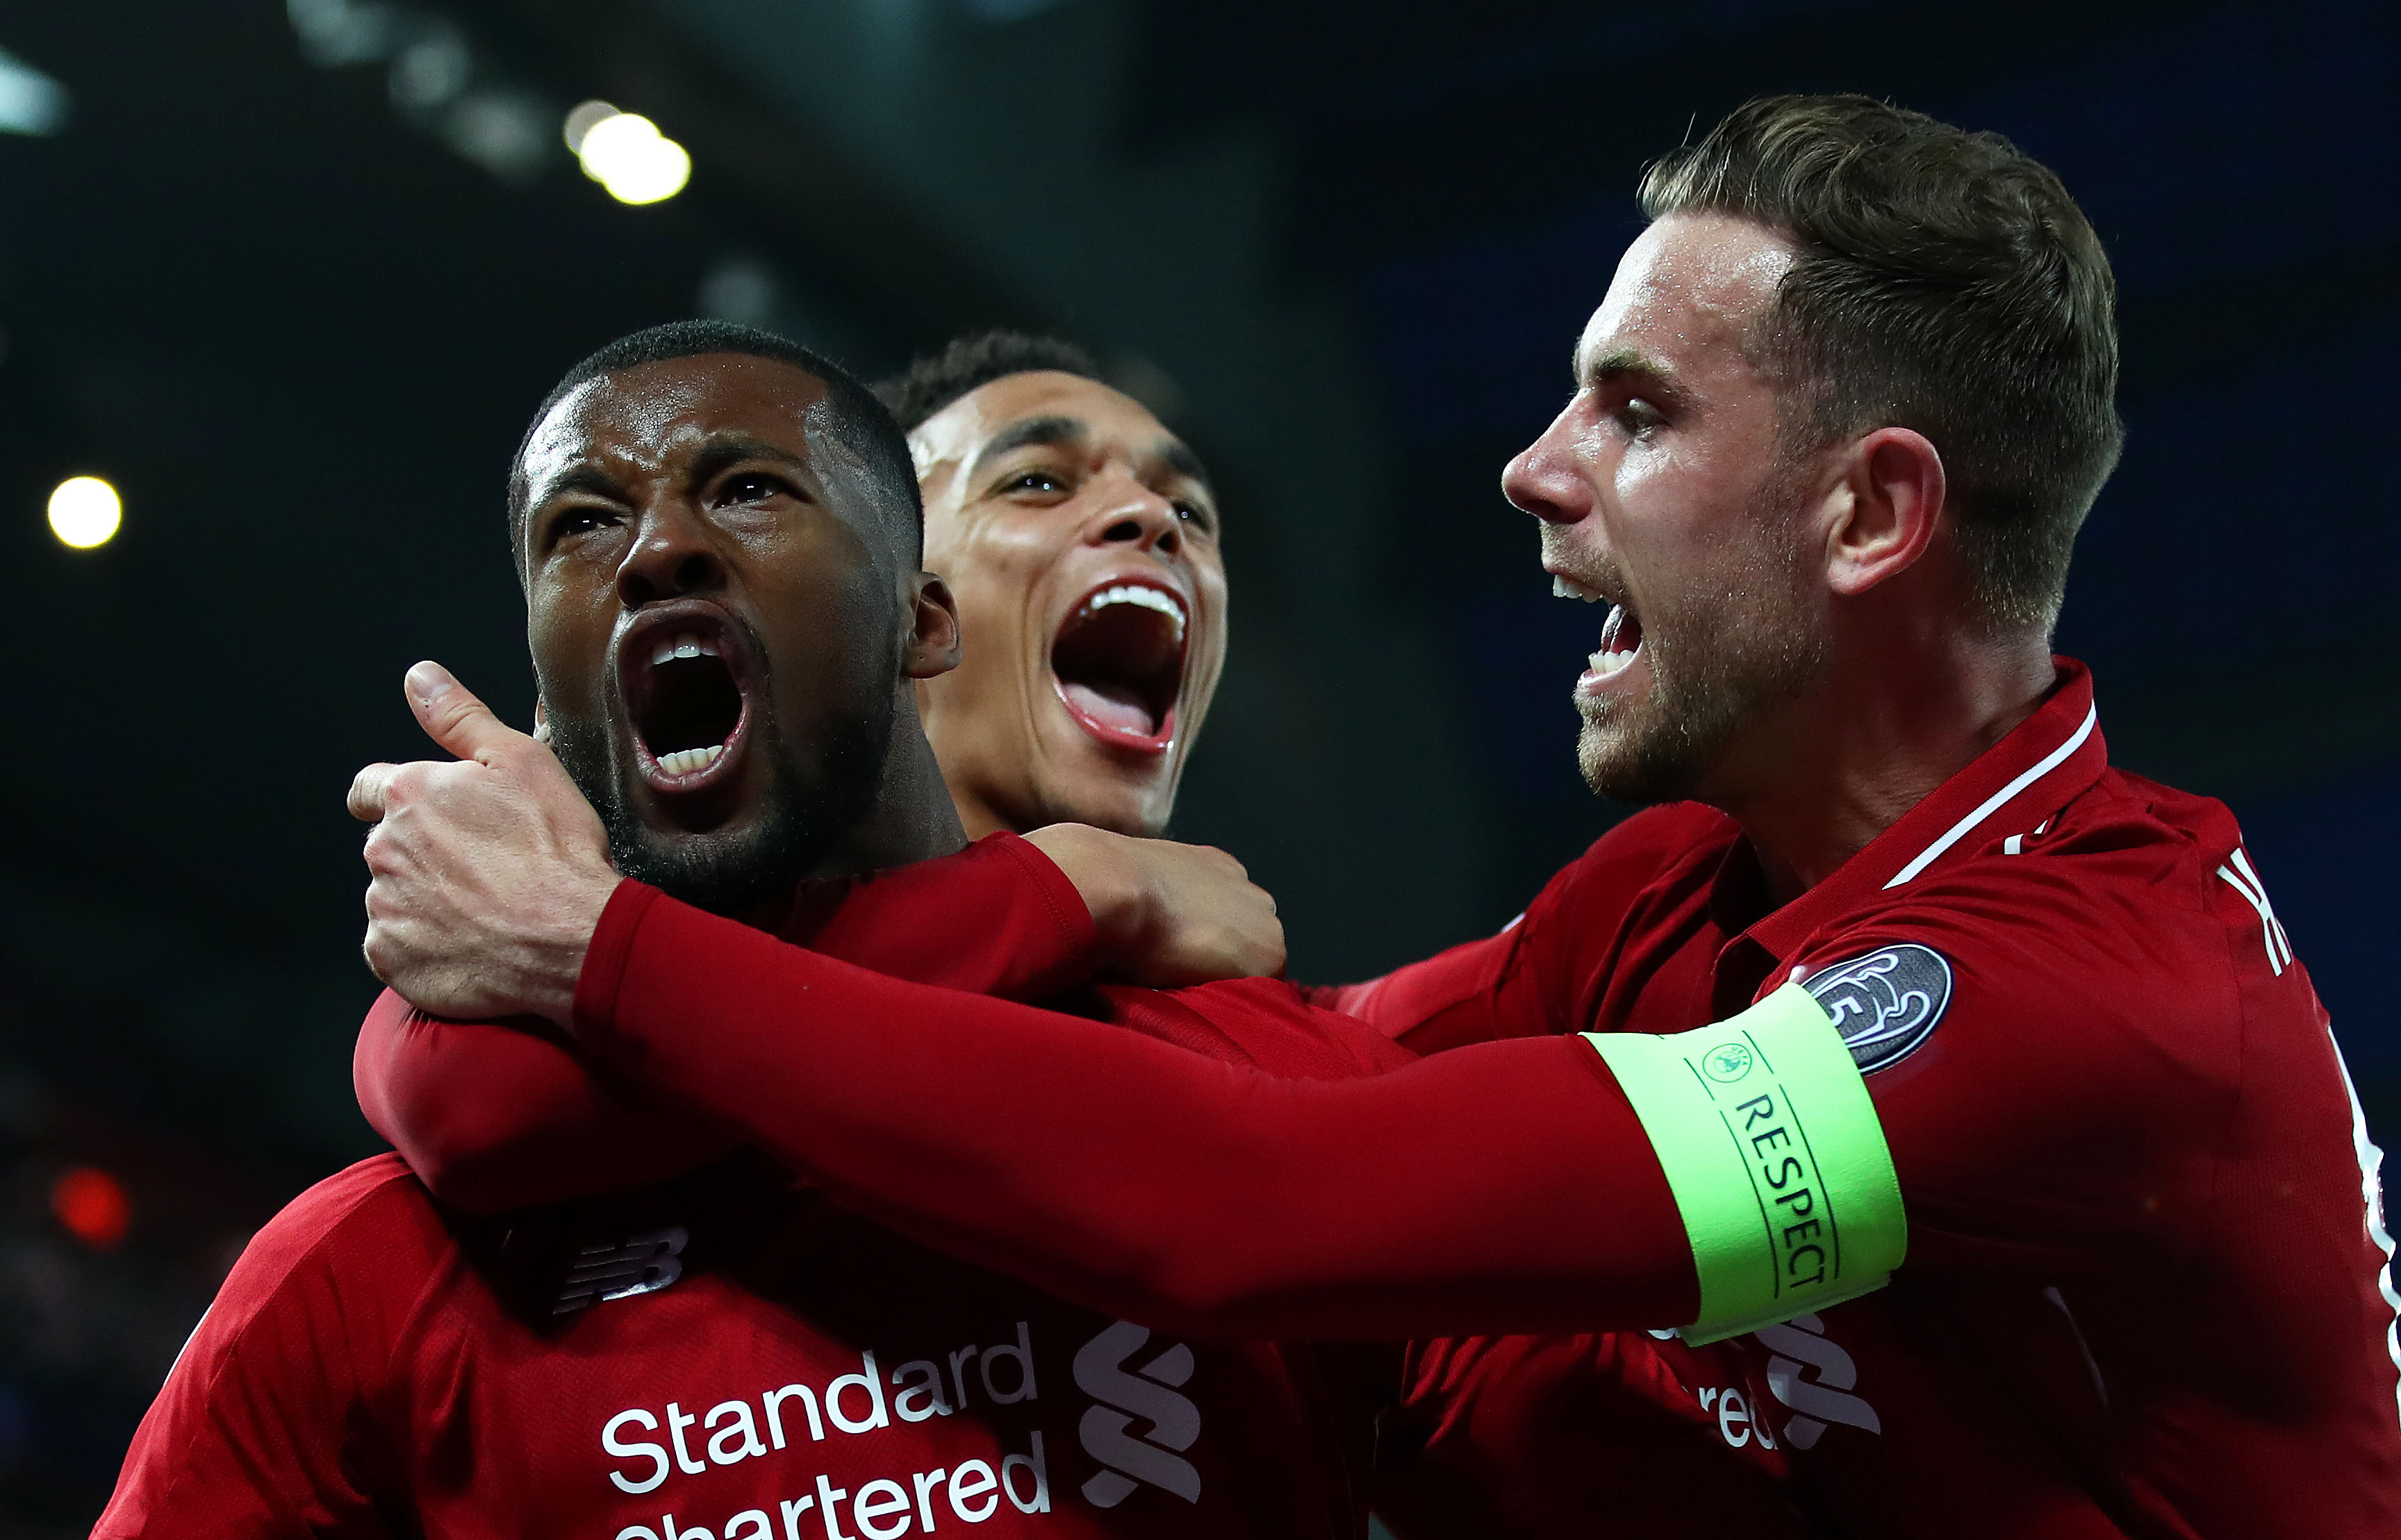 Liverpool players celebrating their win against Barcelona in the Champion's League semi-final